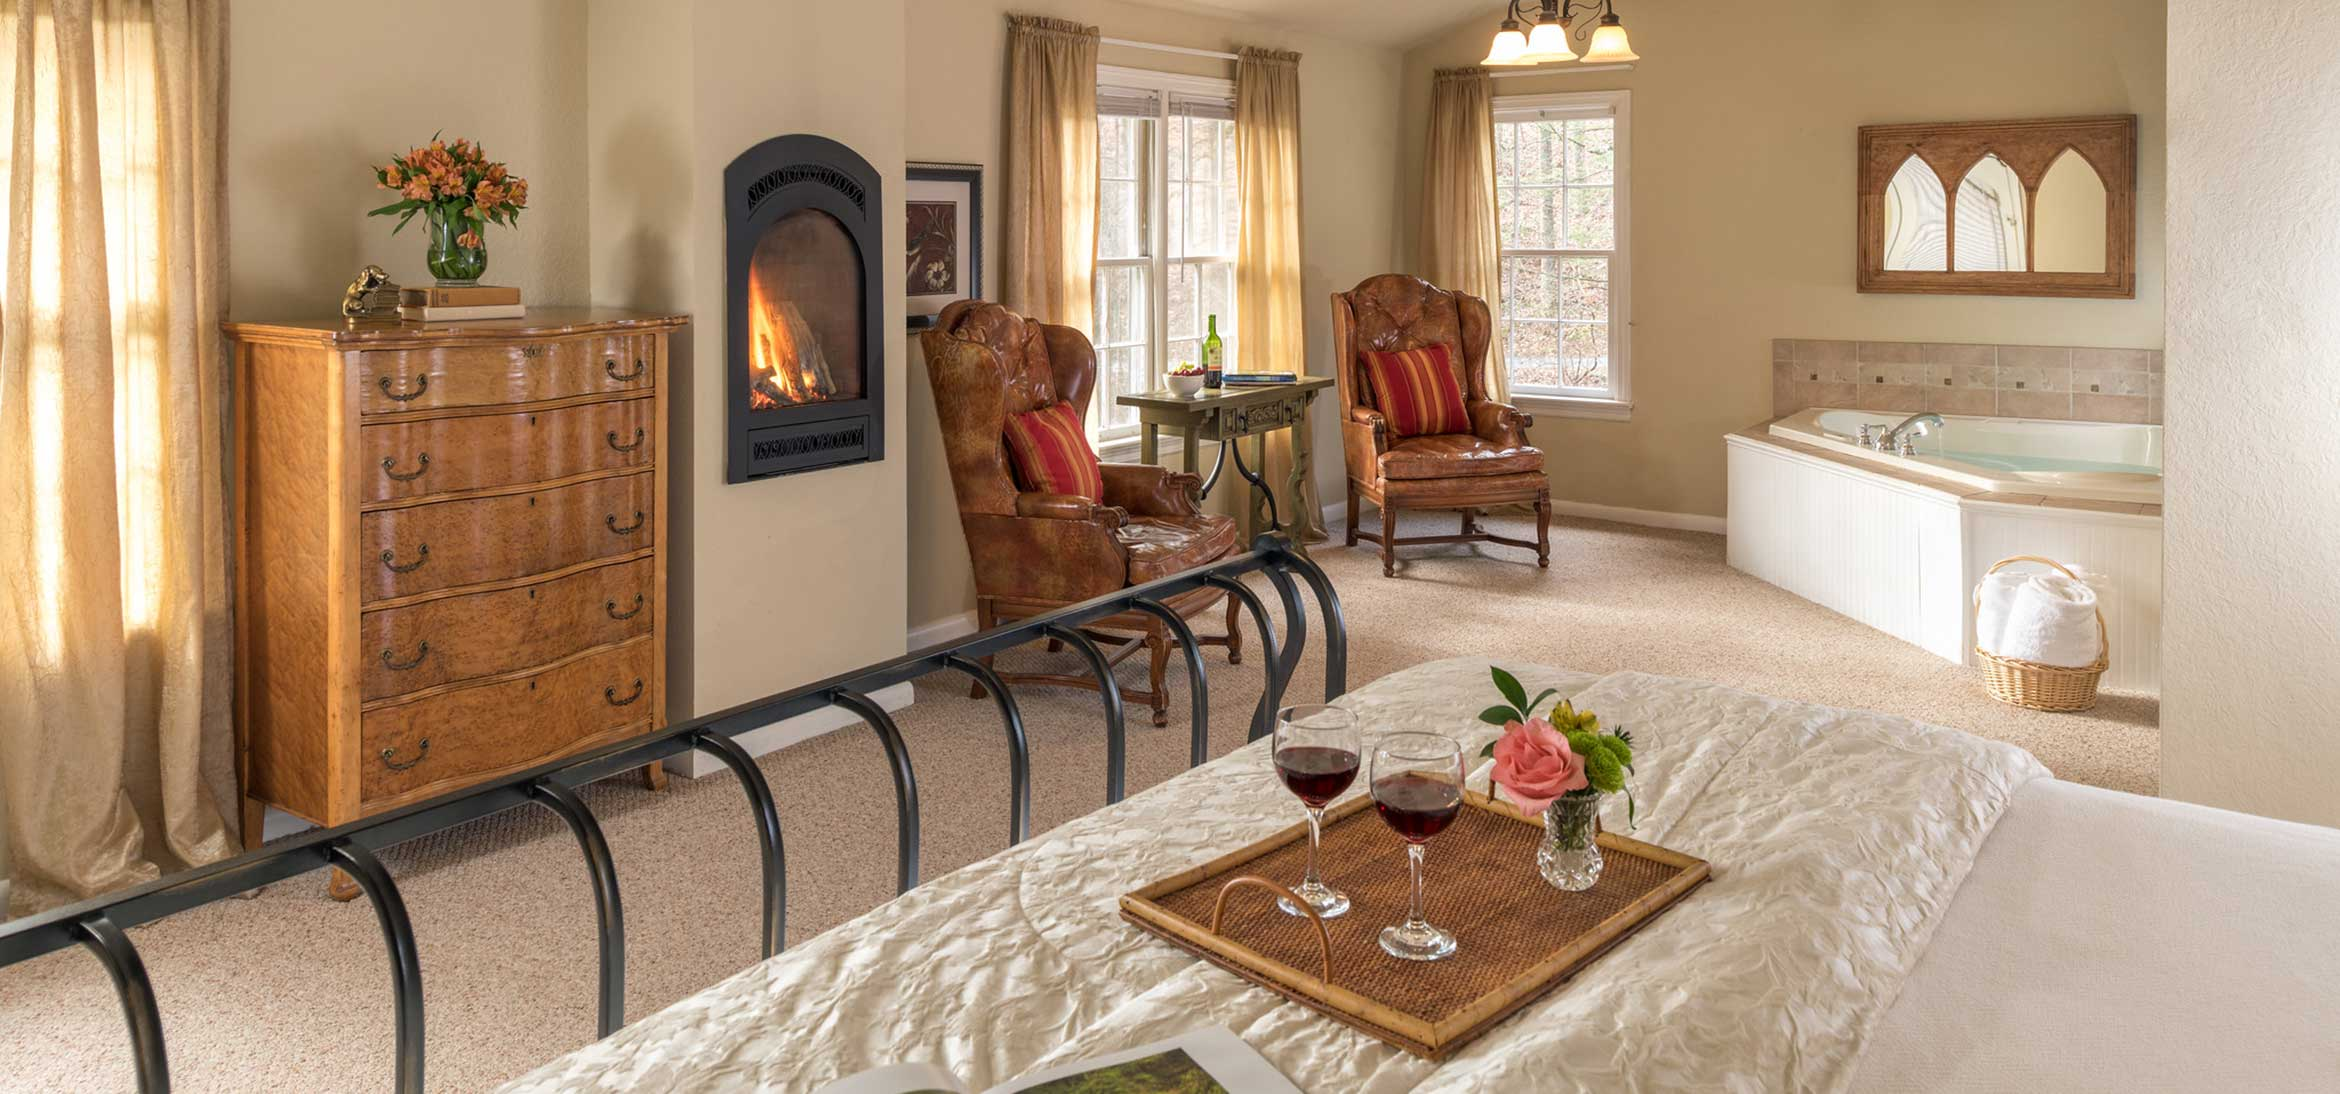 Sunrise Suite bed, sitting area, fireplace, and jetted tub